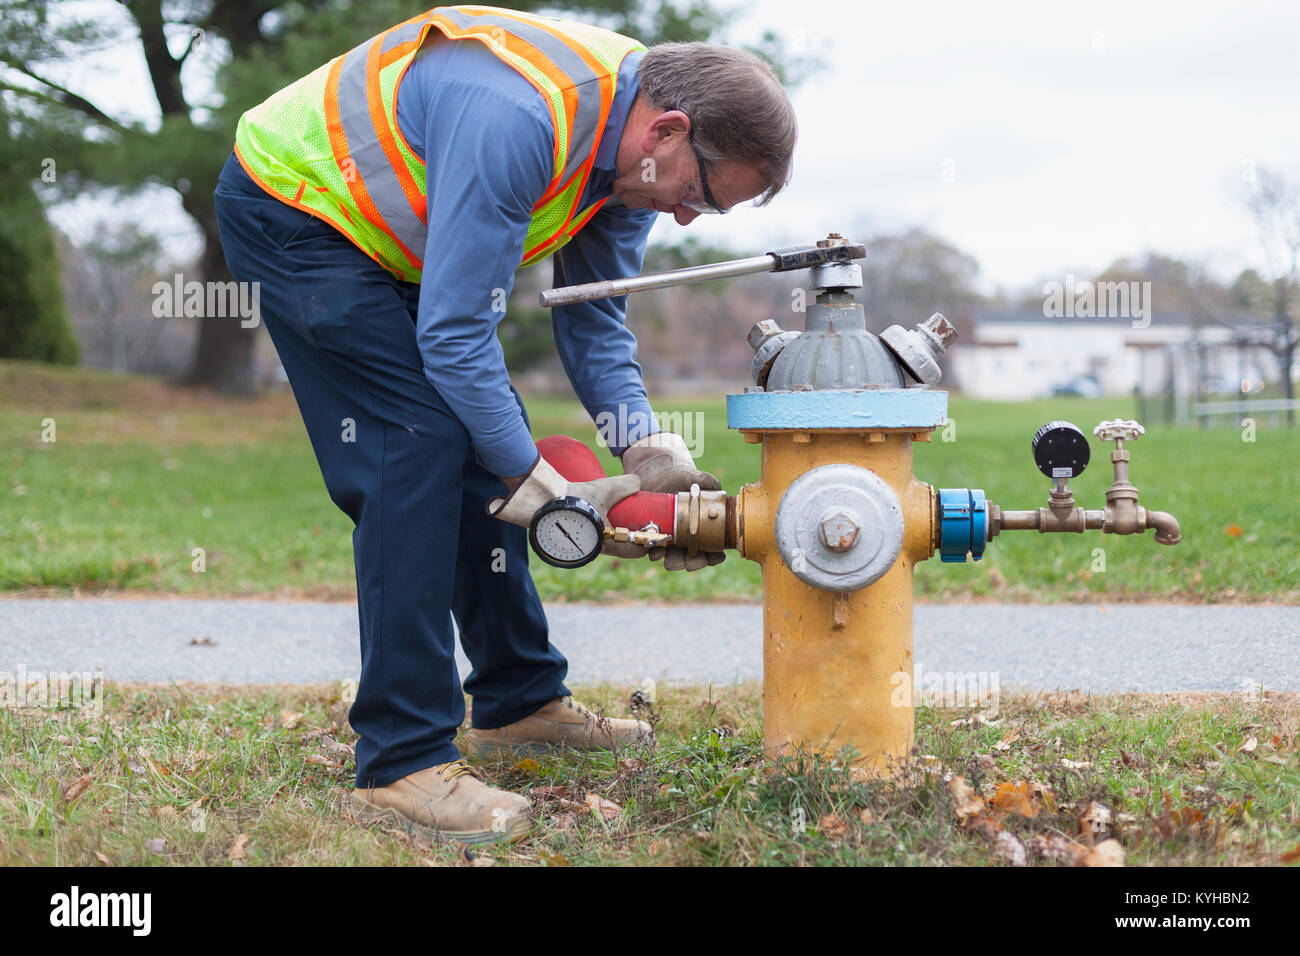 Technician installing hydrant attachment with sensor for flushing mains - Stock Image